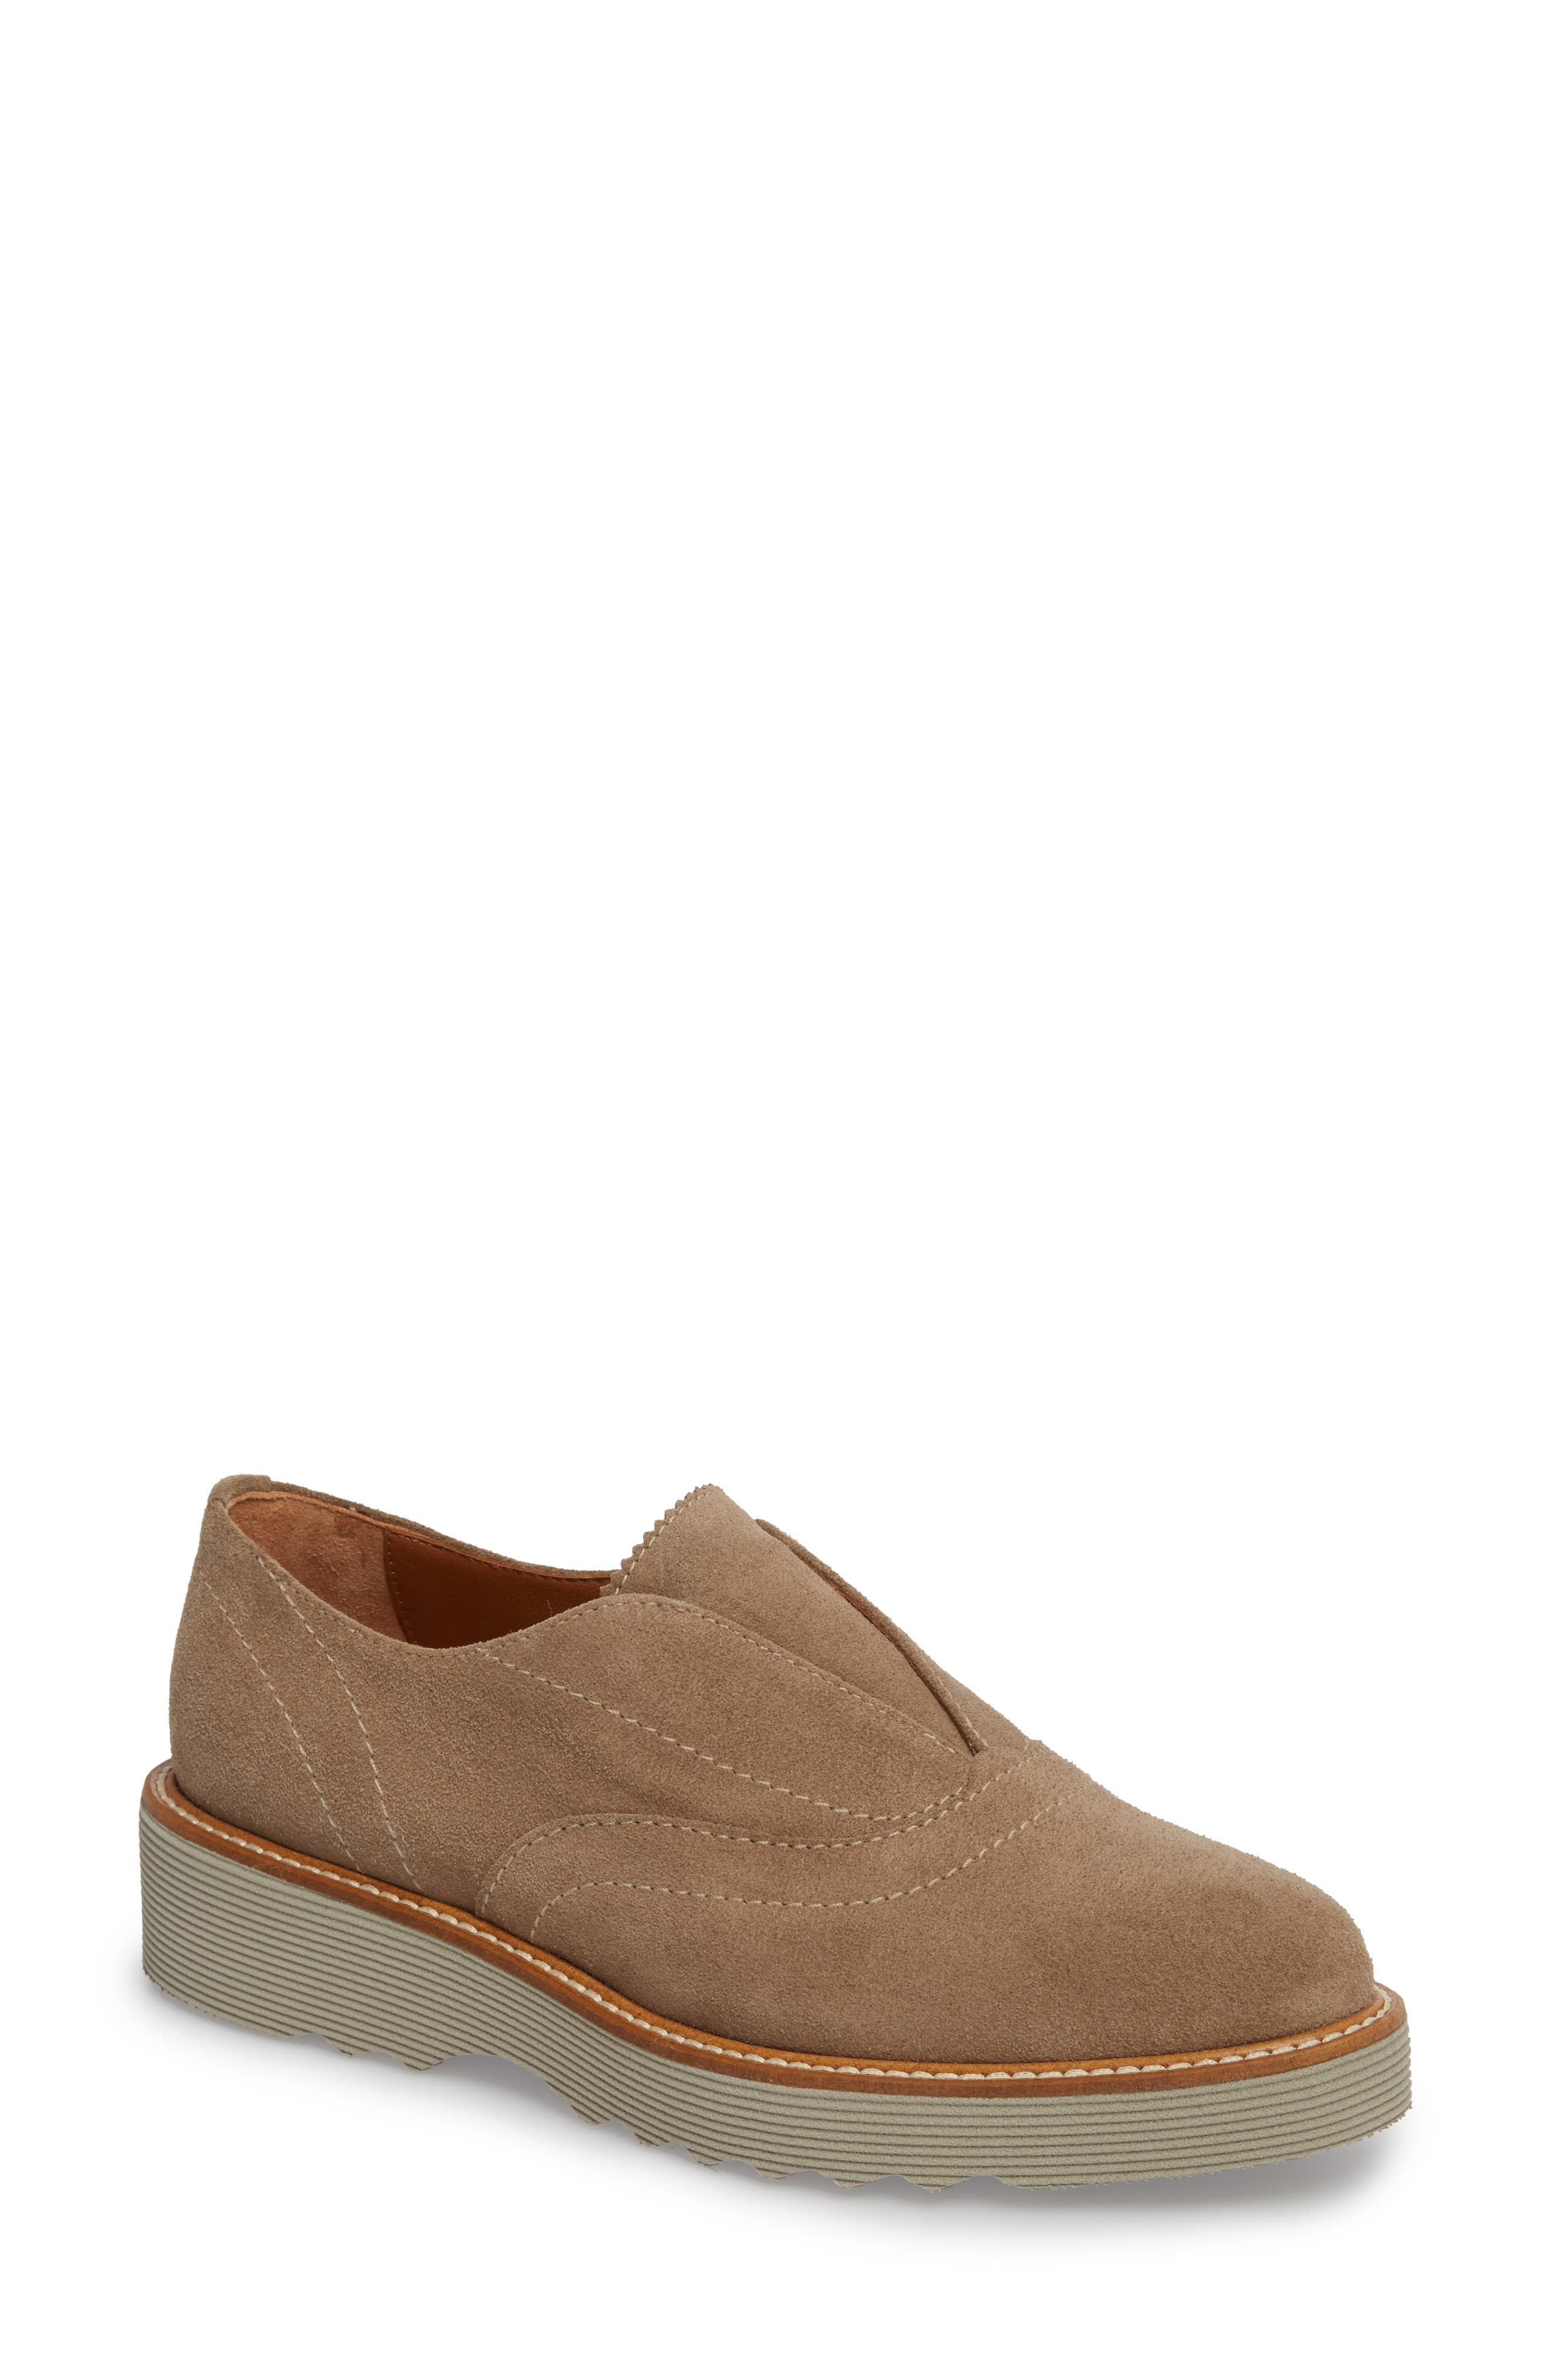 Kaleigh Weatherproof Loafer,                             Main thumbnail 2, color,